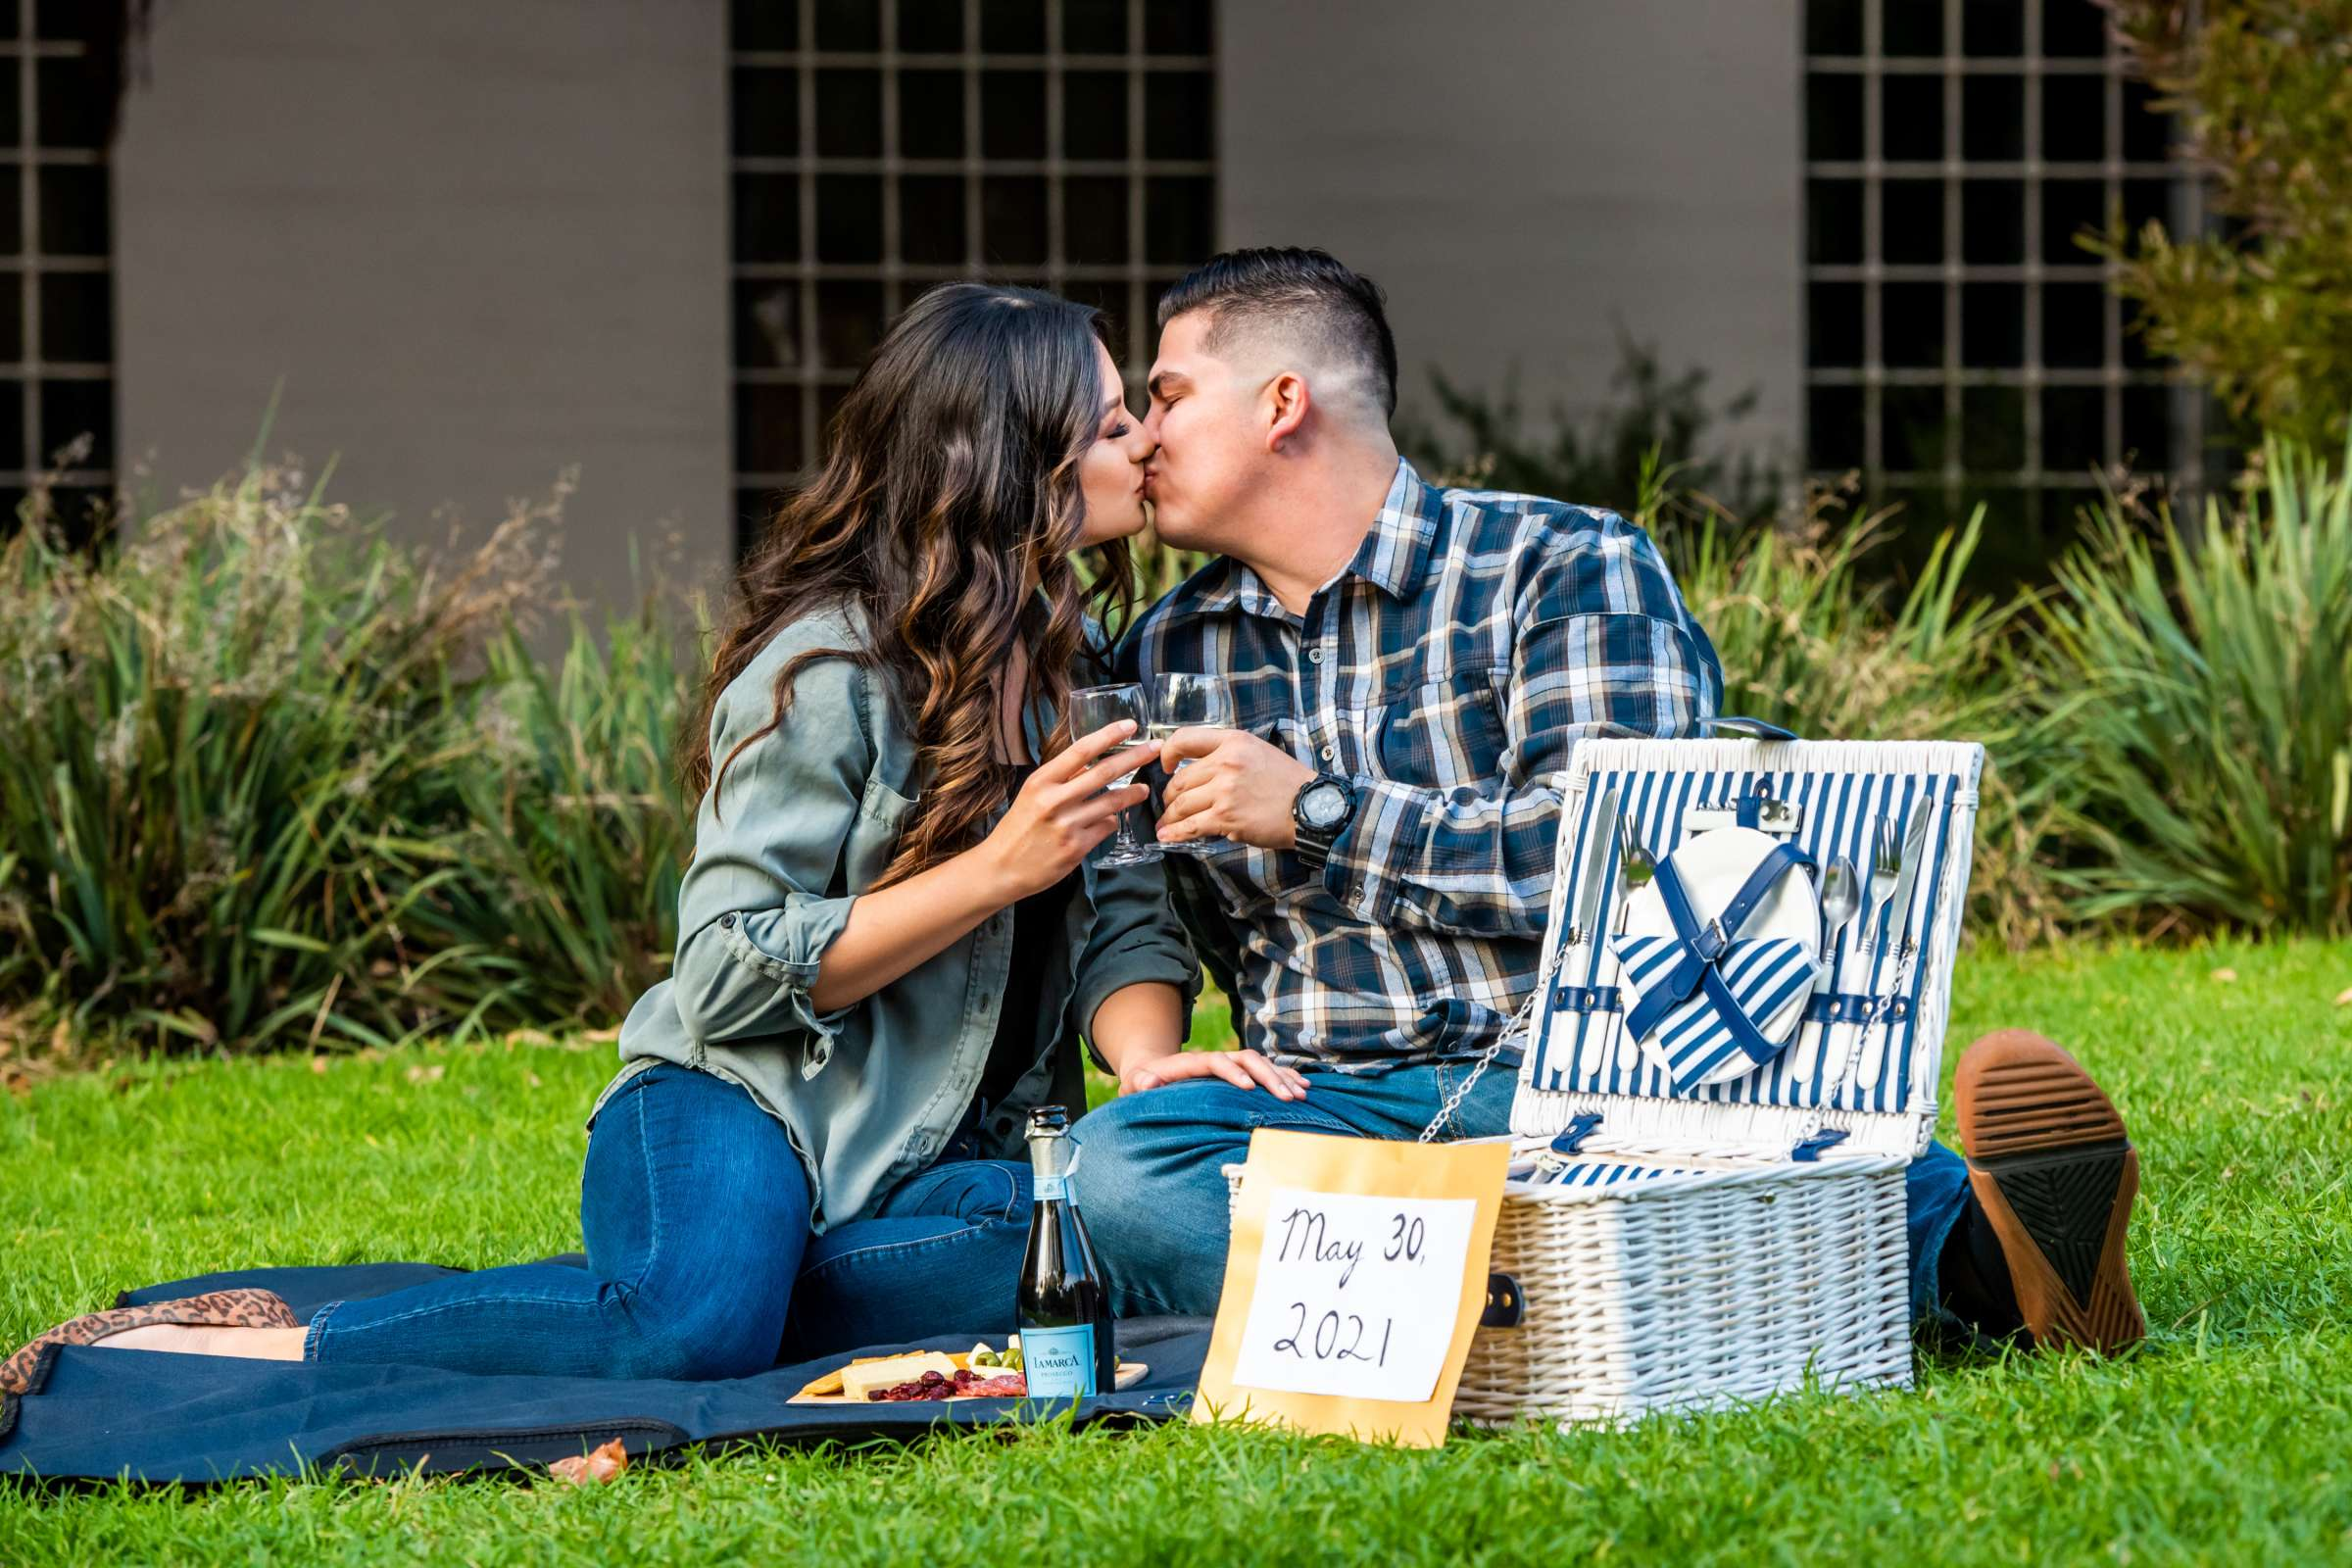 Engagement, Christal and Ismael Engagement Photo #621662 by True Photography